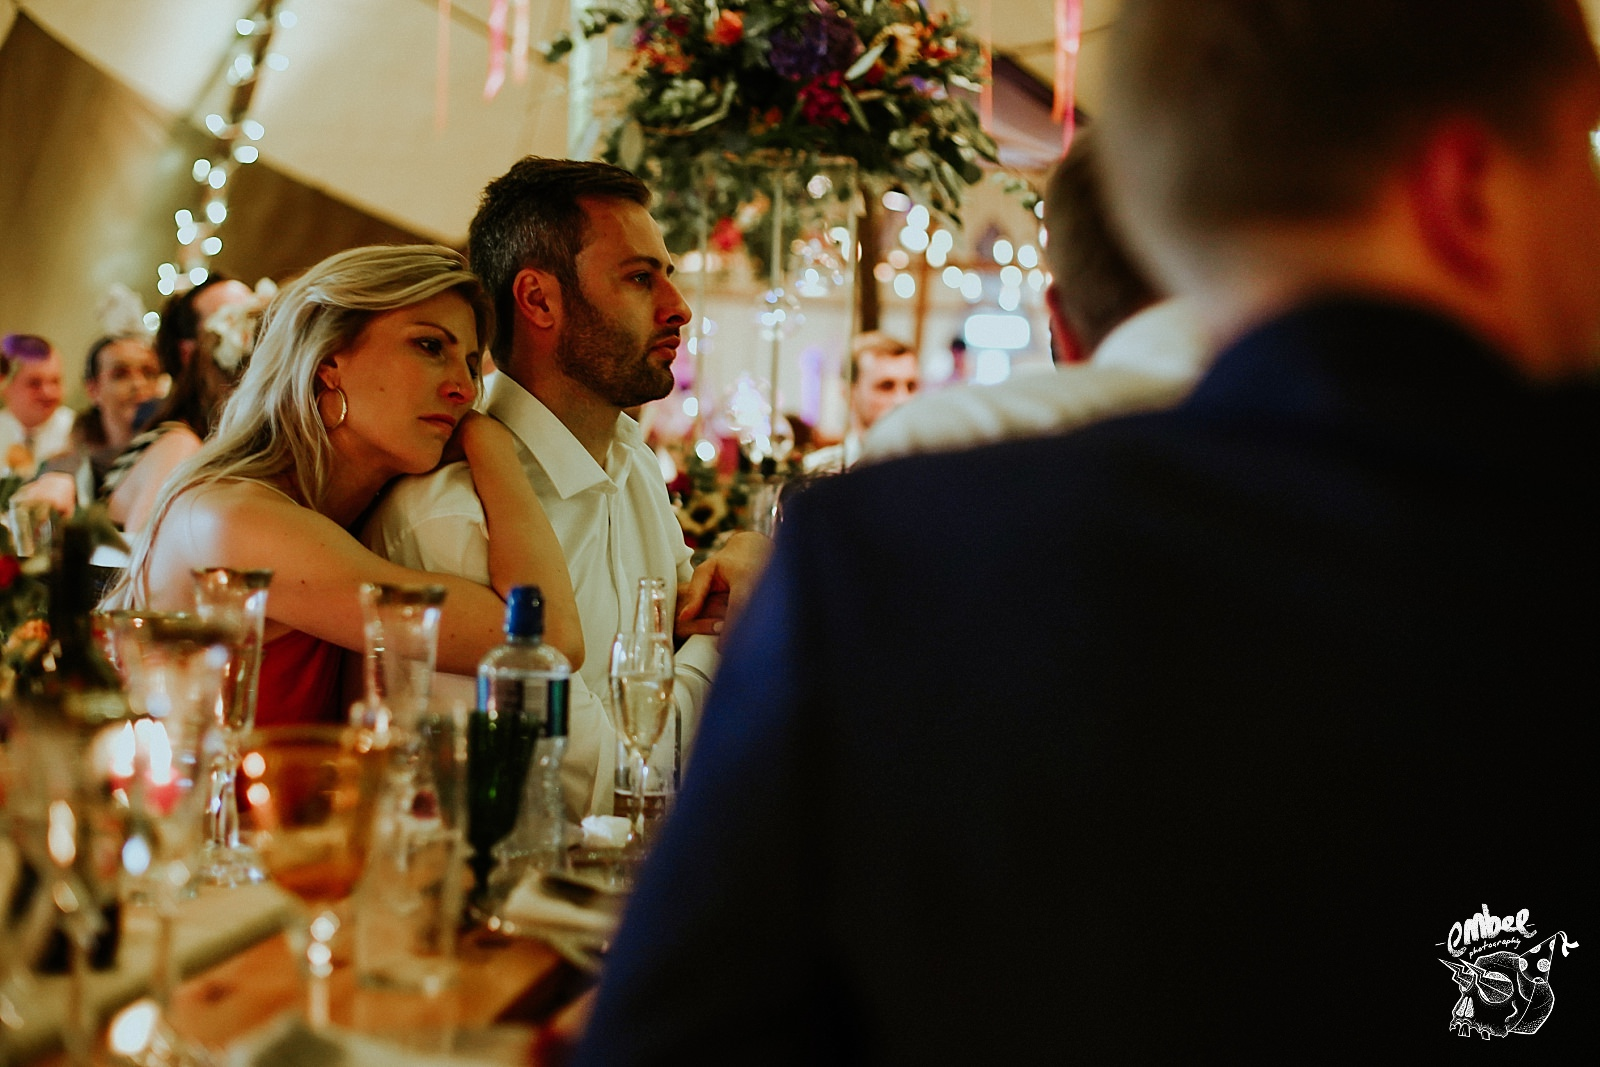 woman leans on man during the speeches to comfort him